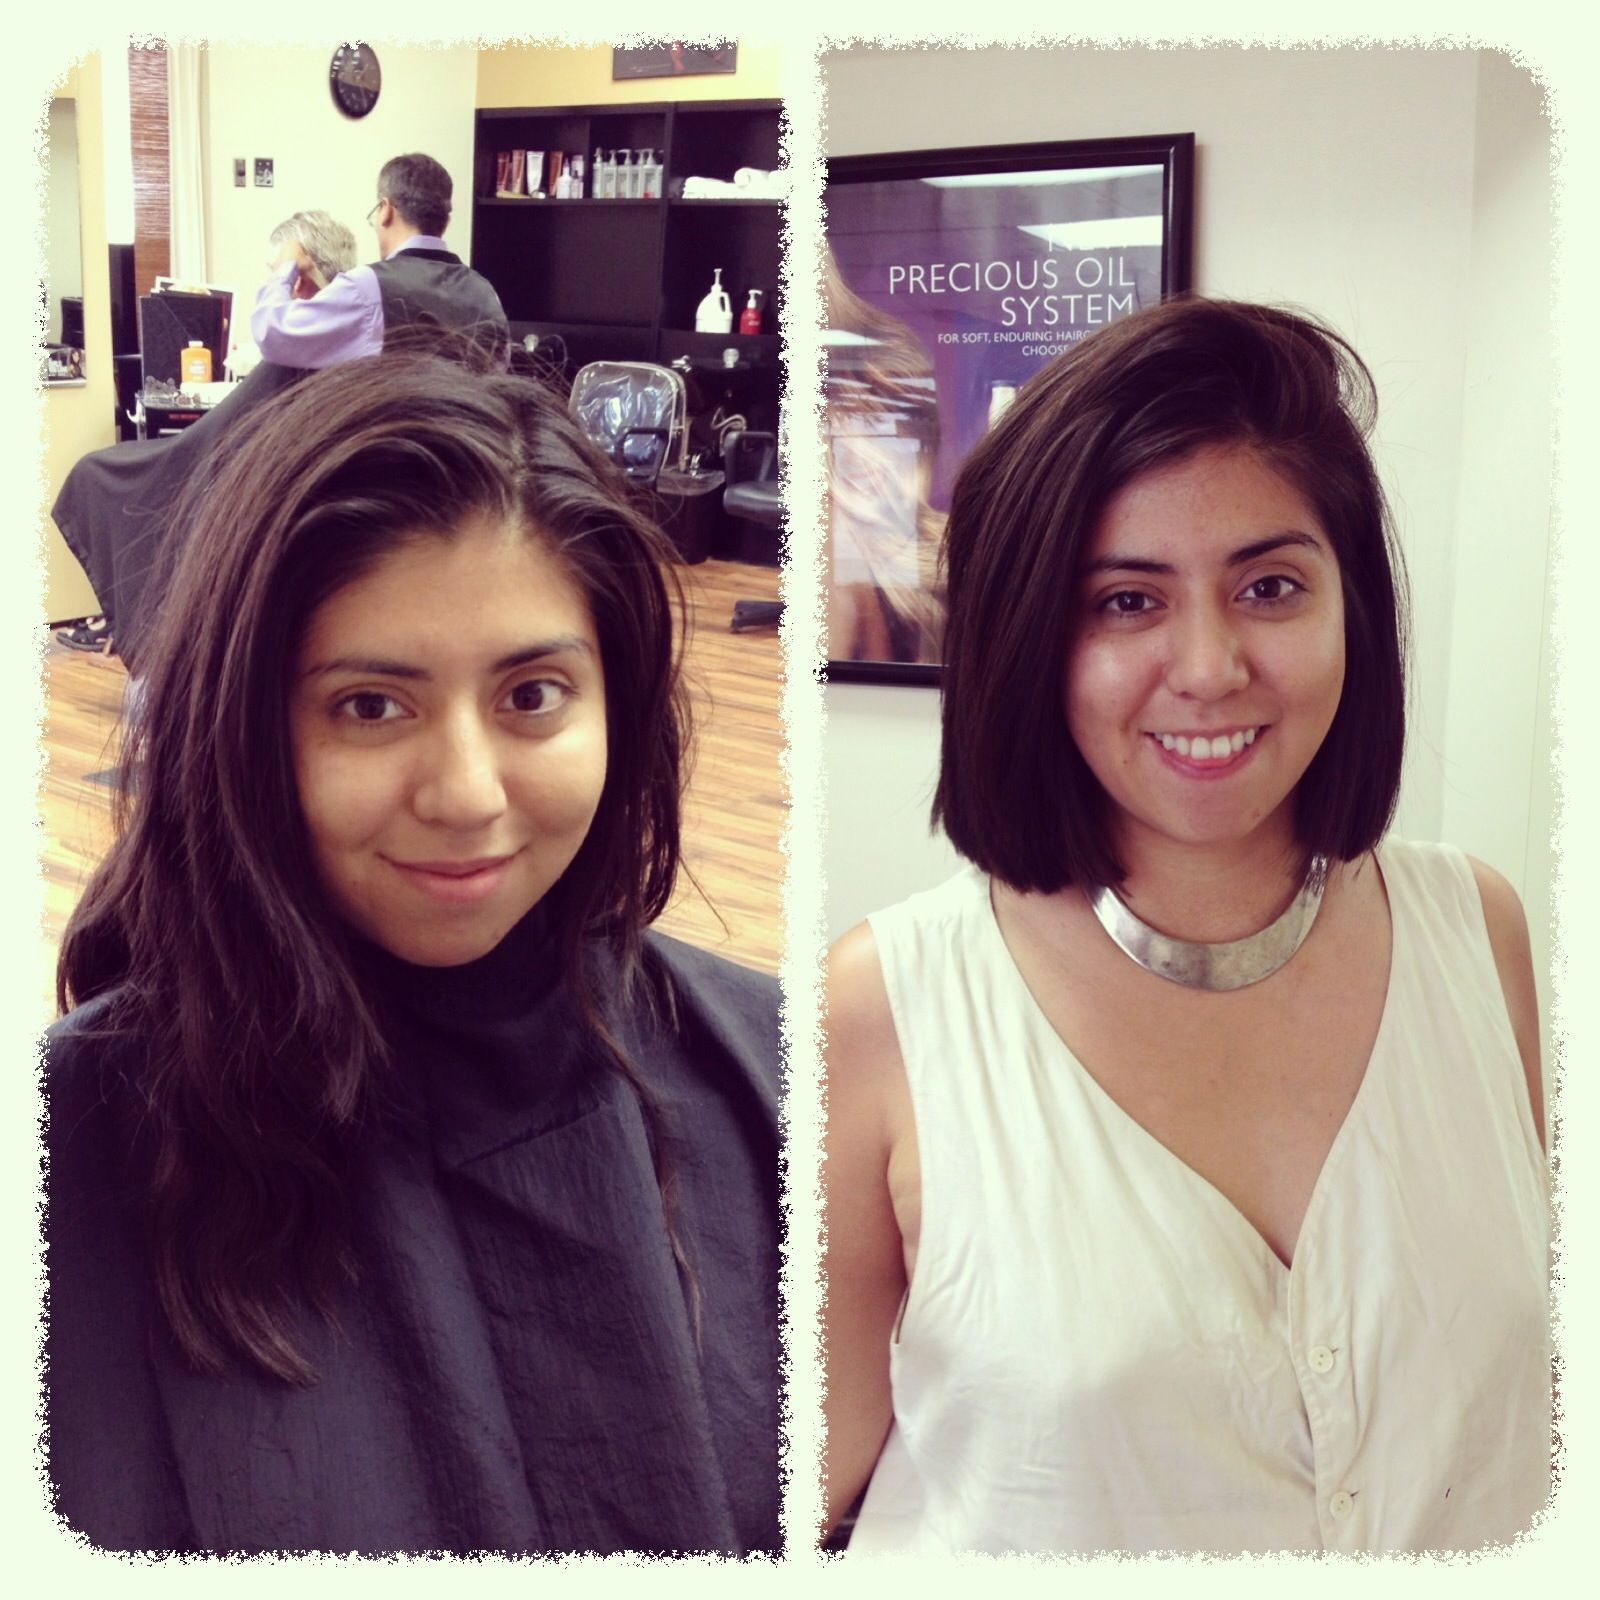 Went from grown out hair to a blunt, minimal bob.